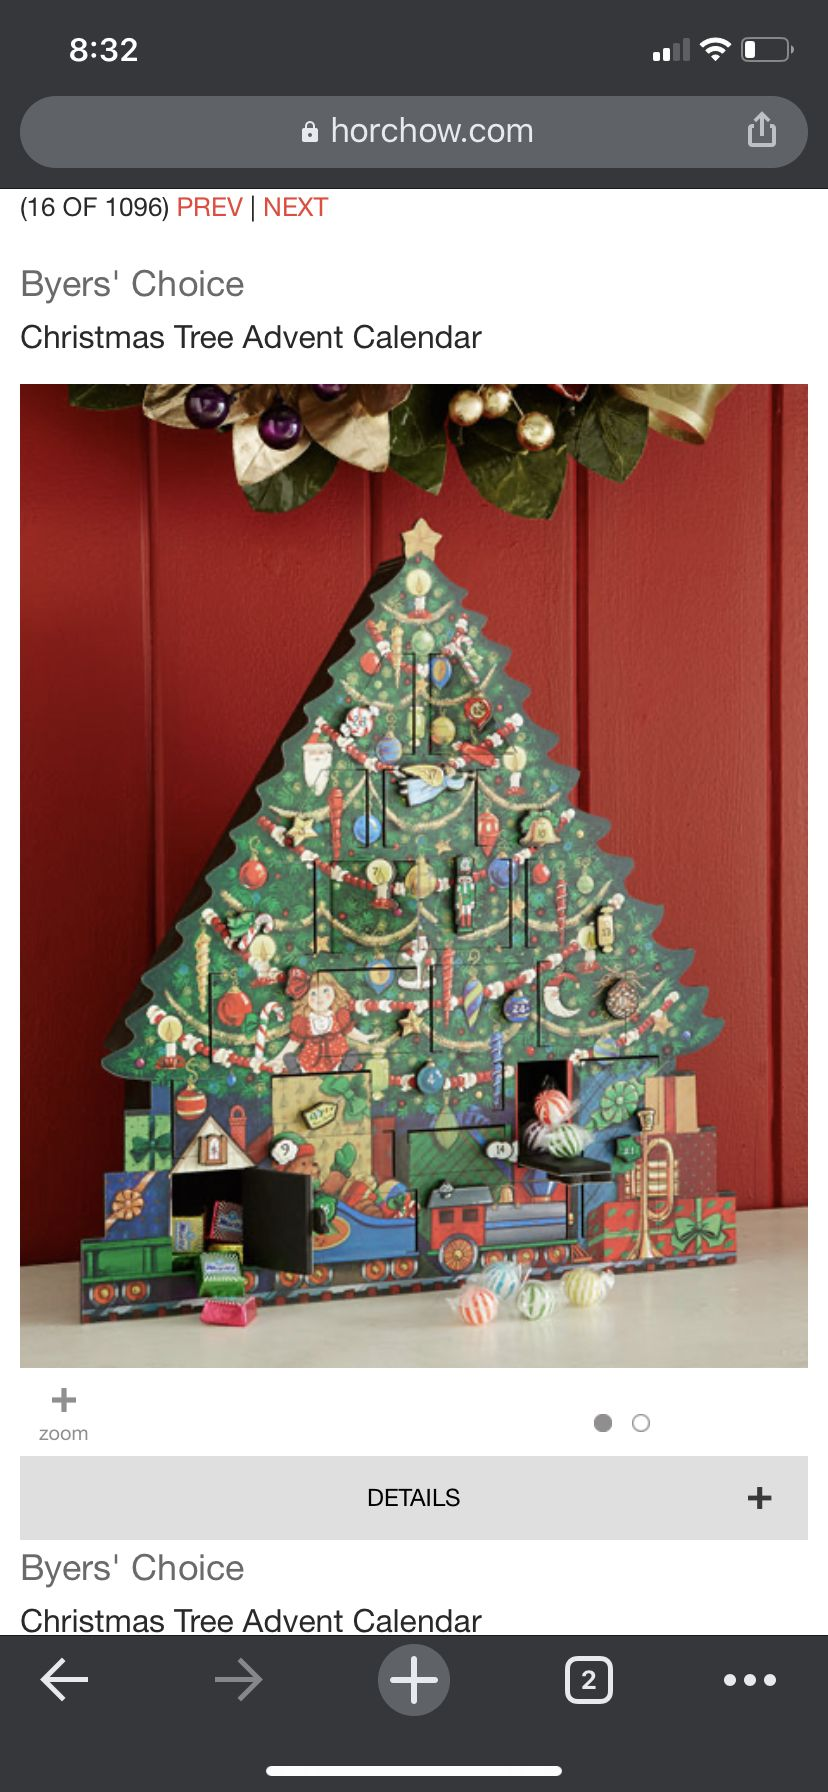 Pin By Joelle Harvey On Christmas In 2020 Holiday Decor Decor Holiday